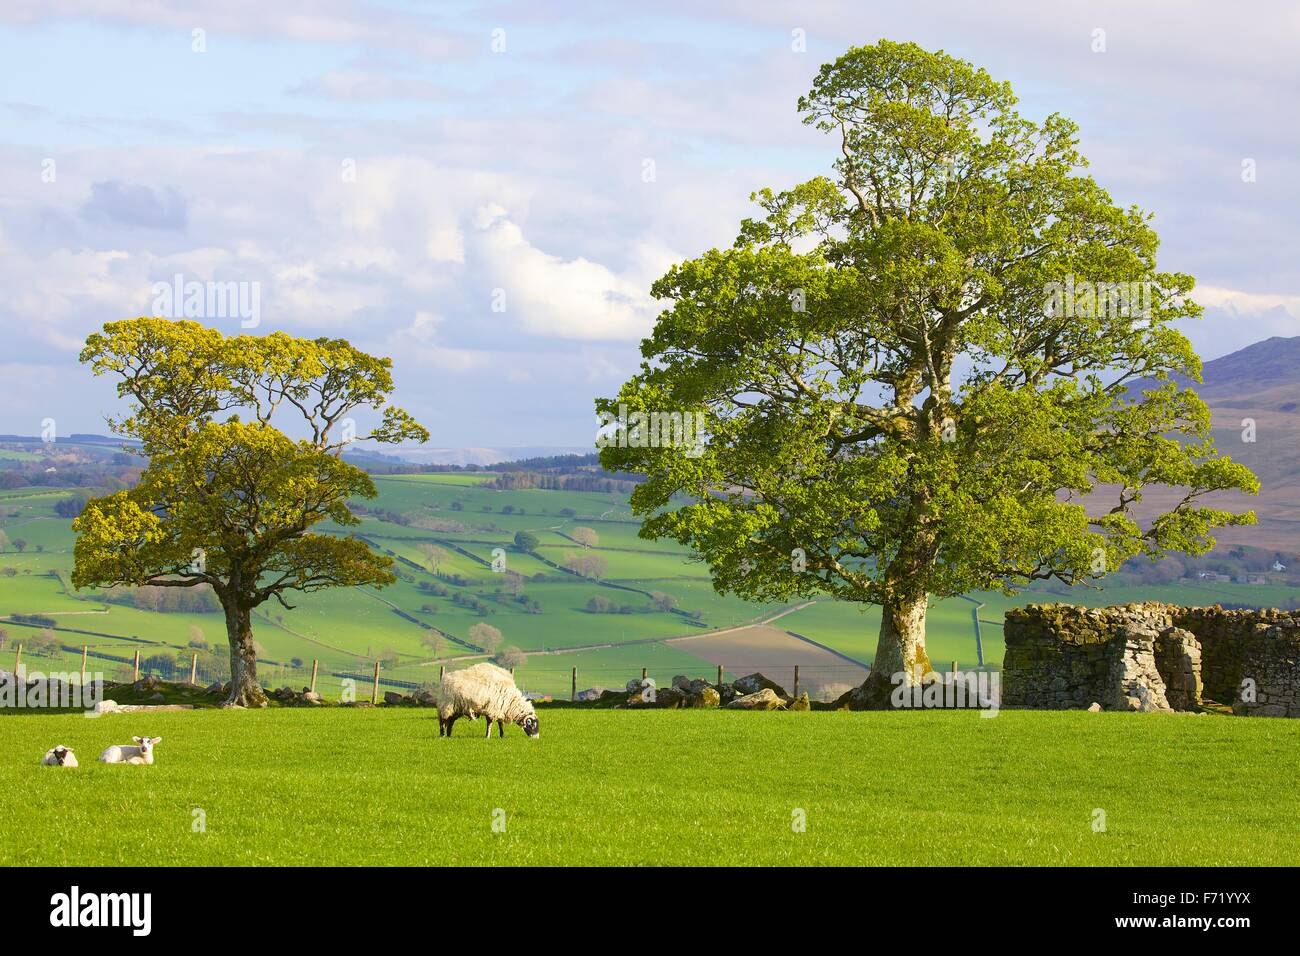 The Lake District National Park. Tree with spring leaves and sheep with lambs in field by dry stone wall. Warnell - Stock Image